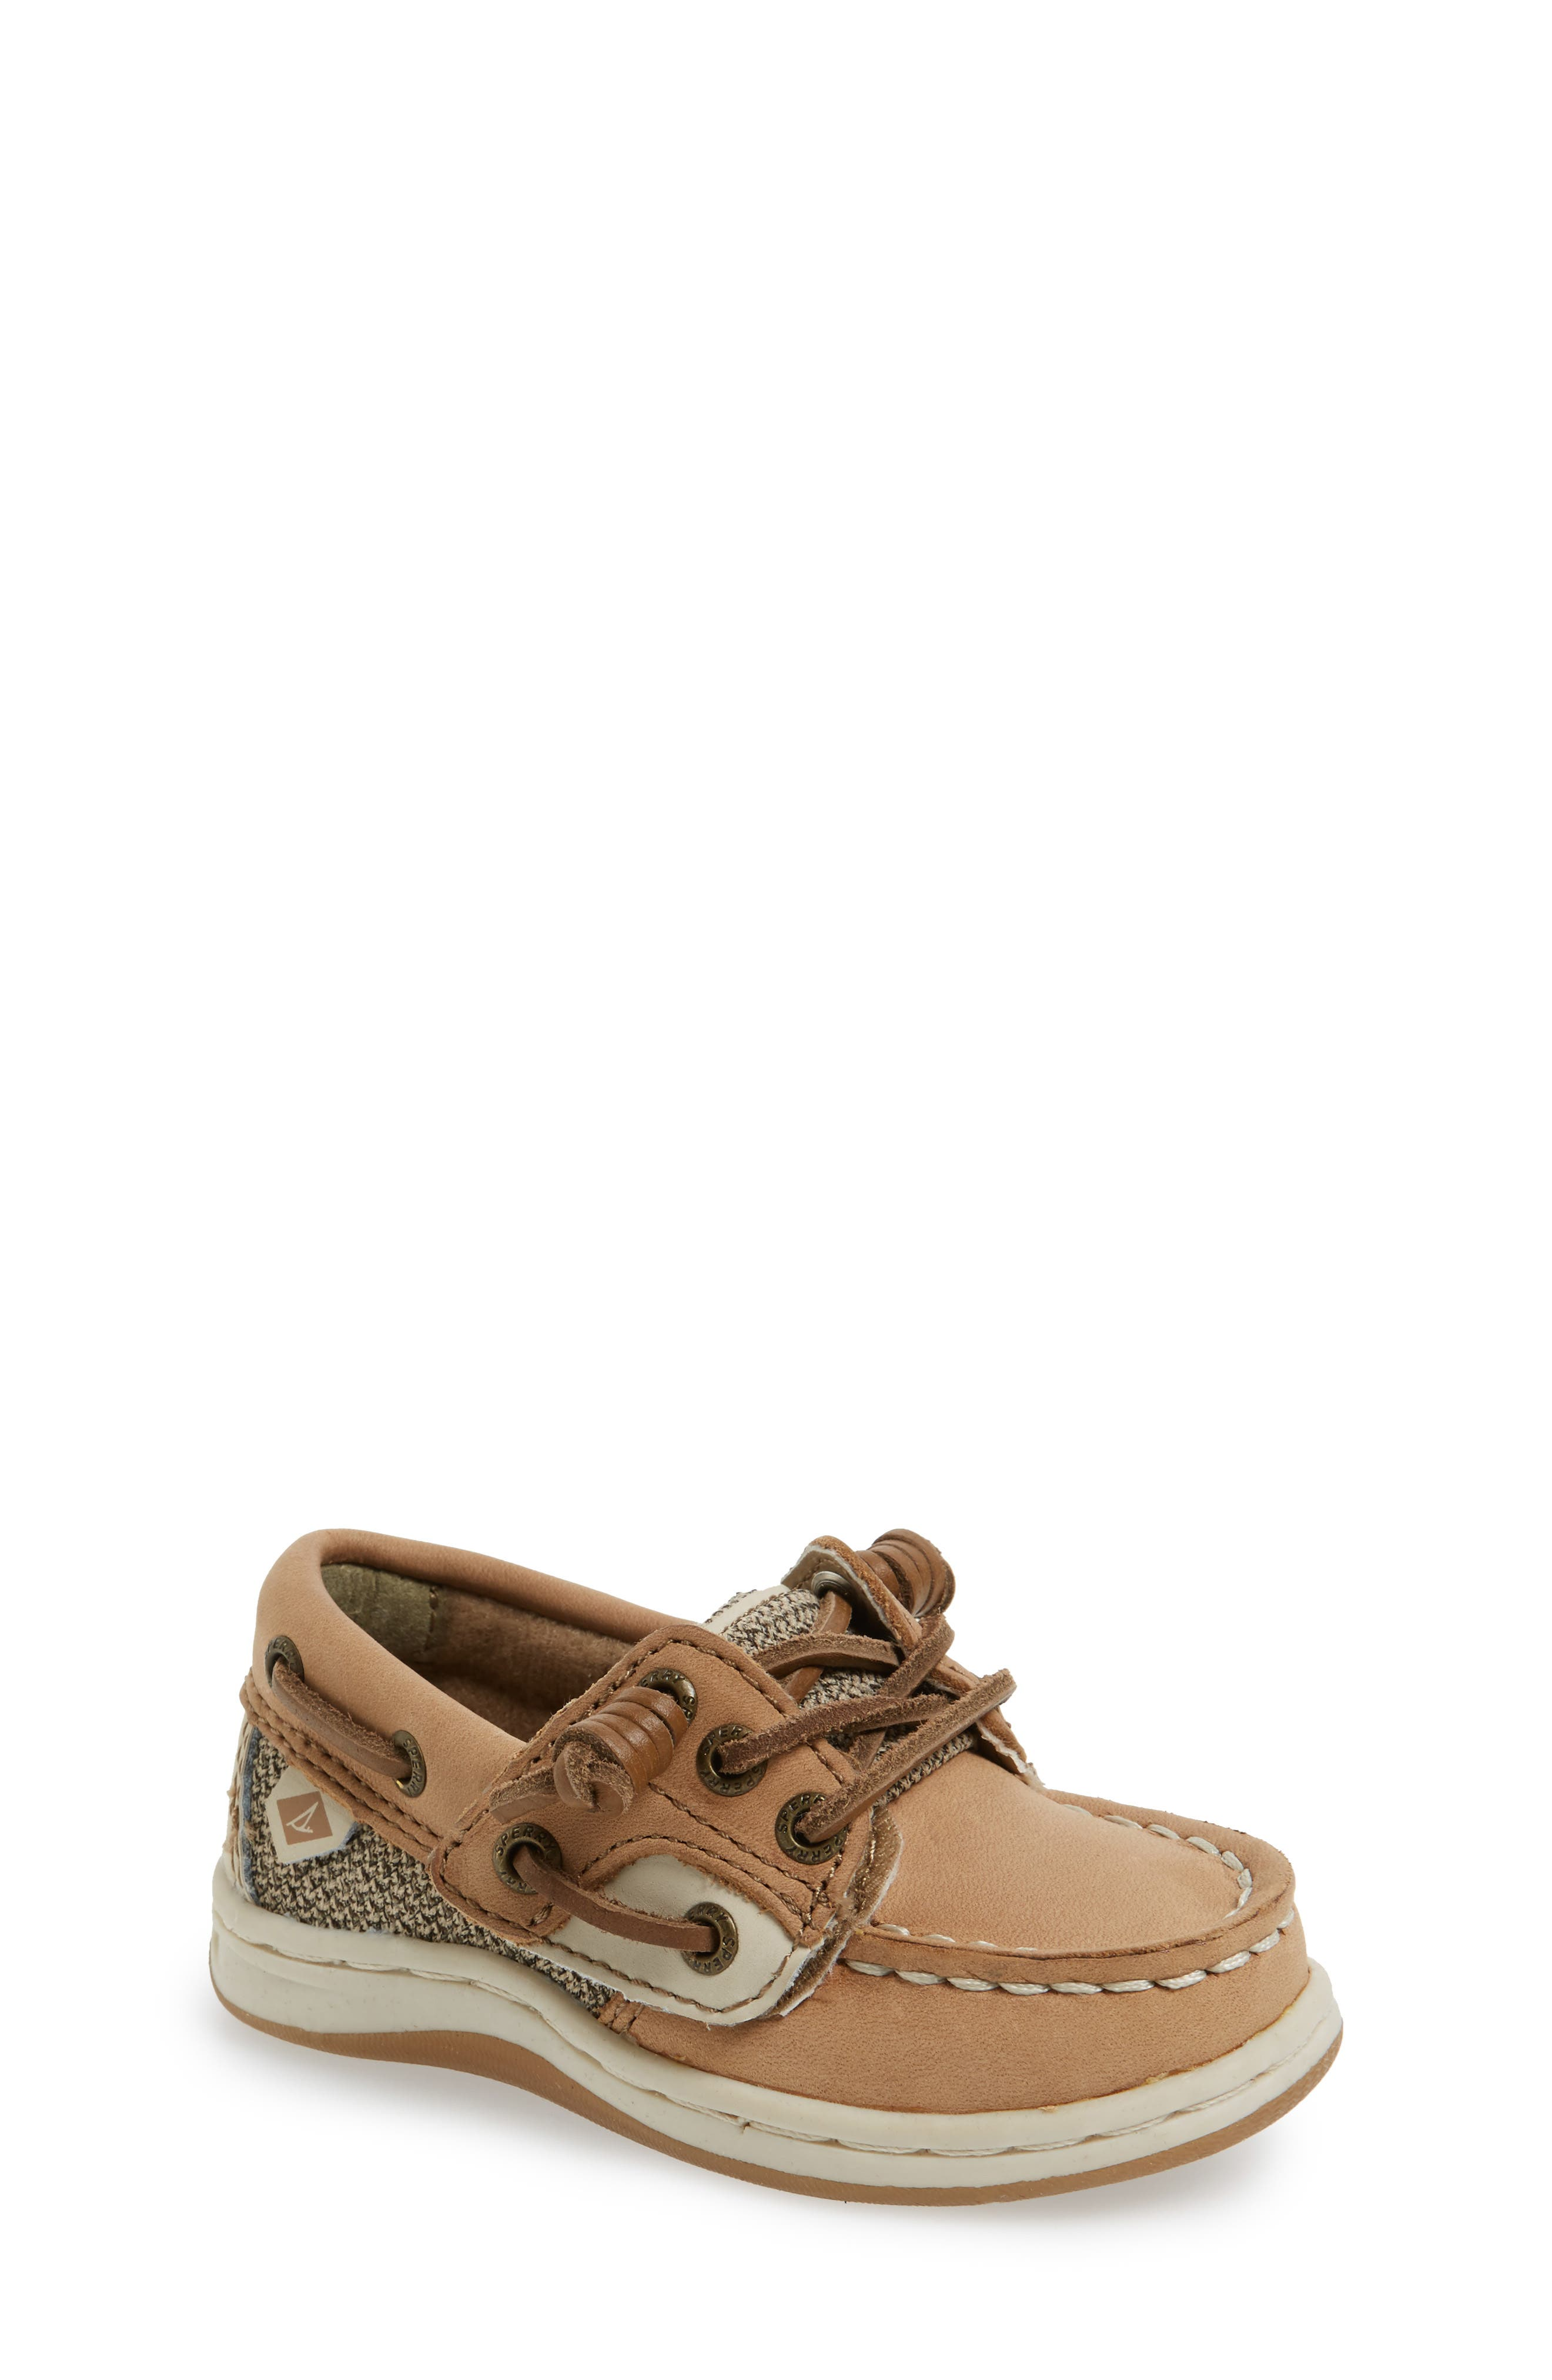 SPERRY KIDS, 'Songfish' Boat Shoe, Main thumbnail 1, color, LINEN/ OAT LEATHER